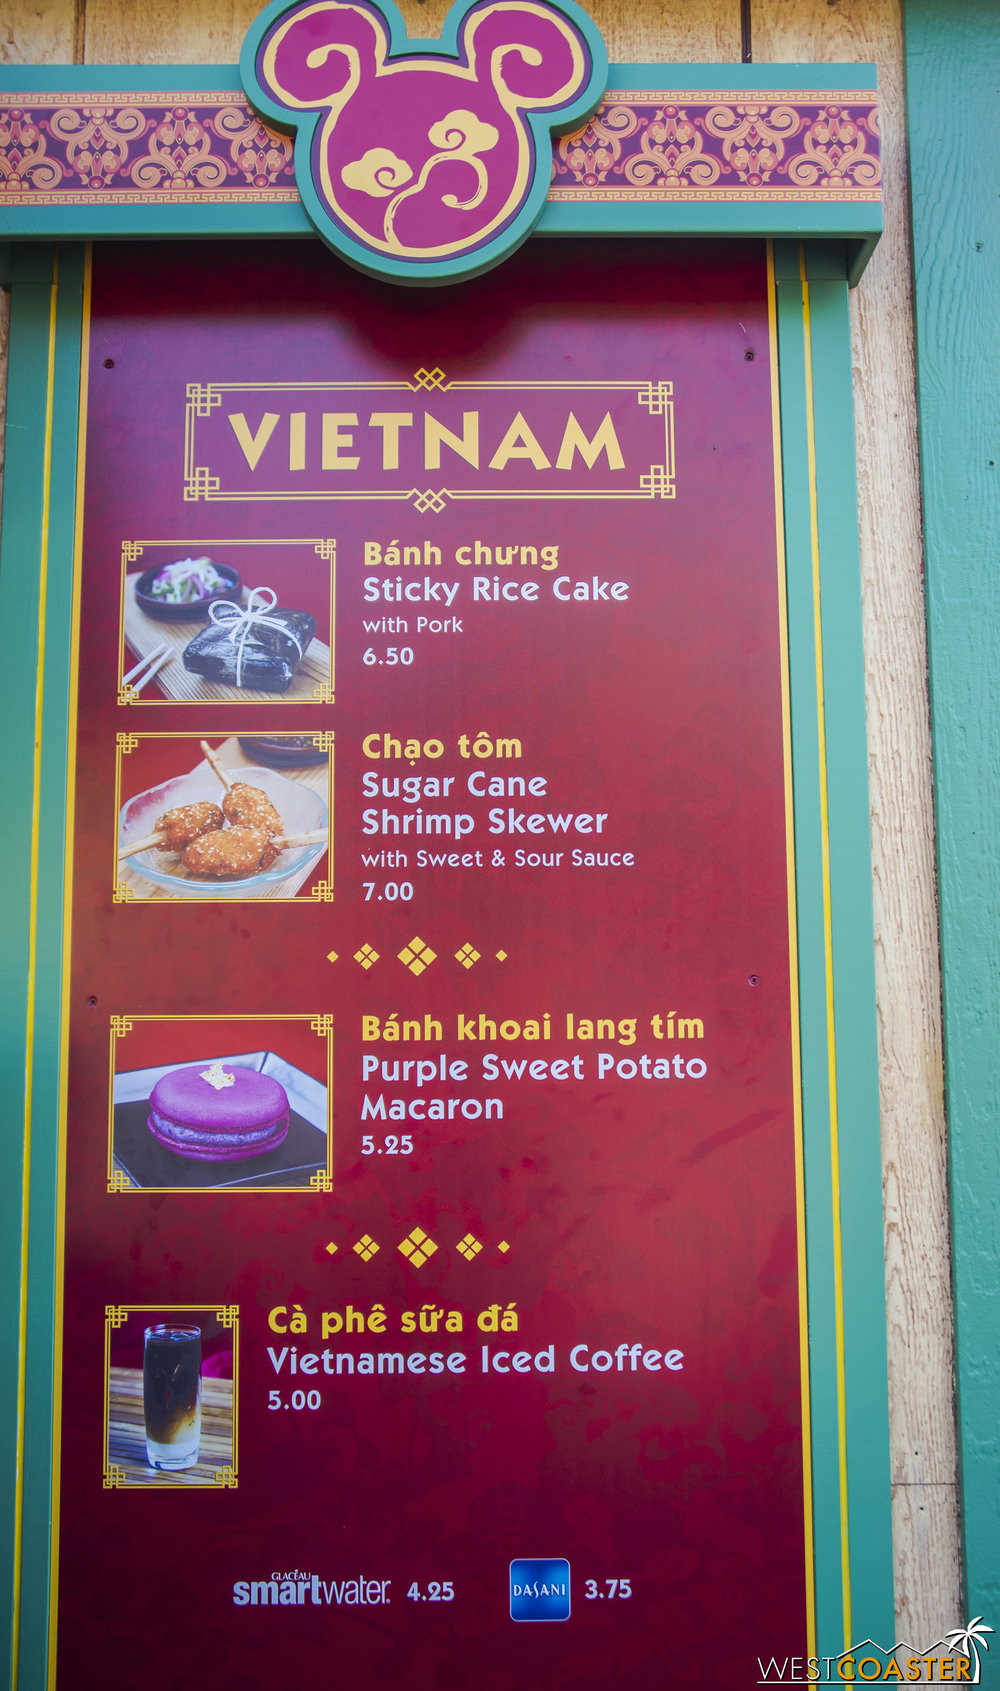 Vietnam returns exactly the same menu as last year.  I'd like to try the Bánh Chu'ng the next time I visit. The Chao Tôm was very tasty in its dipping sauce last year, but a bit pricey for the amount of food offered--even by Disney standards!